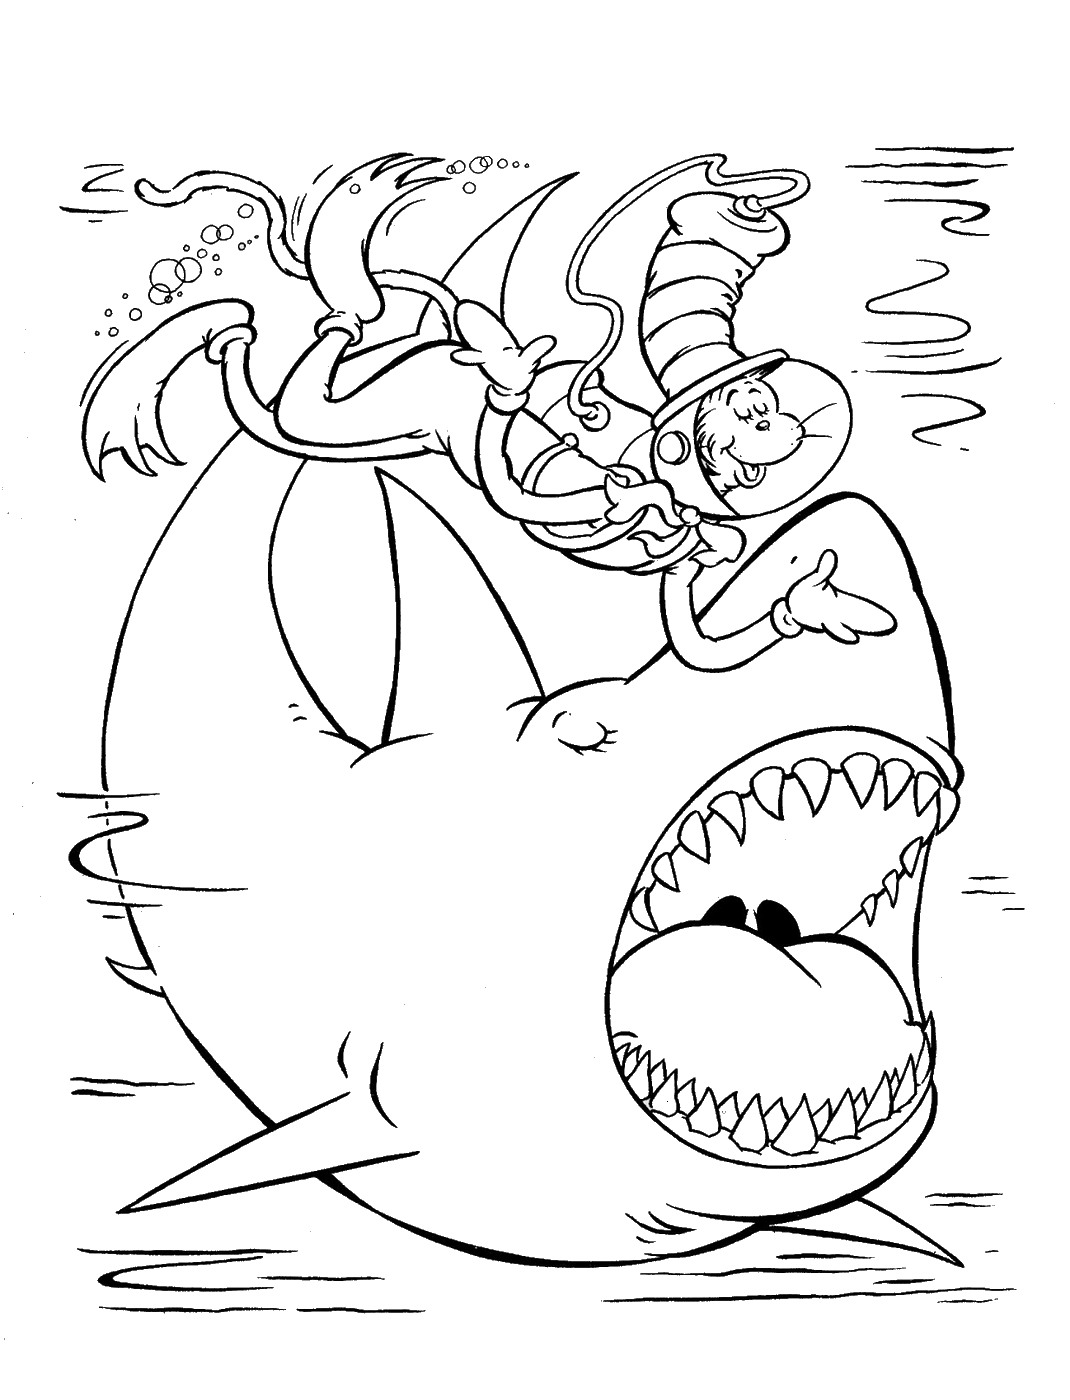 cat in the hat pictures to color free printable cat in the hat coloring pages for kids cat the pictures hat in to color